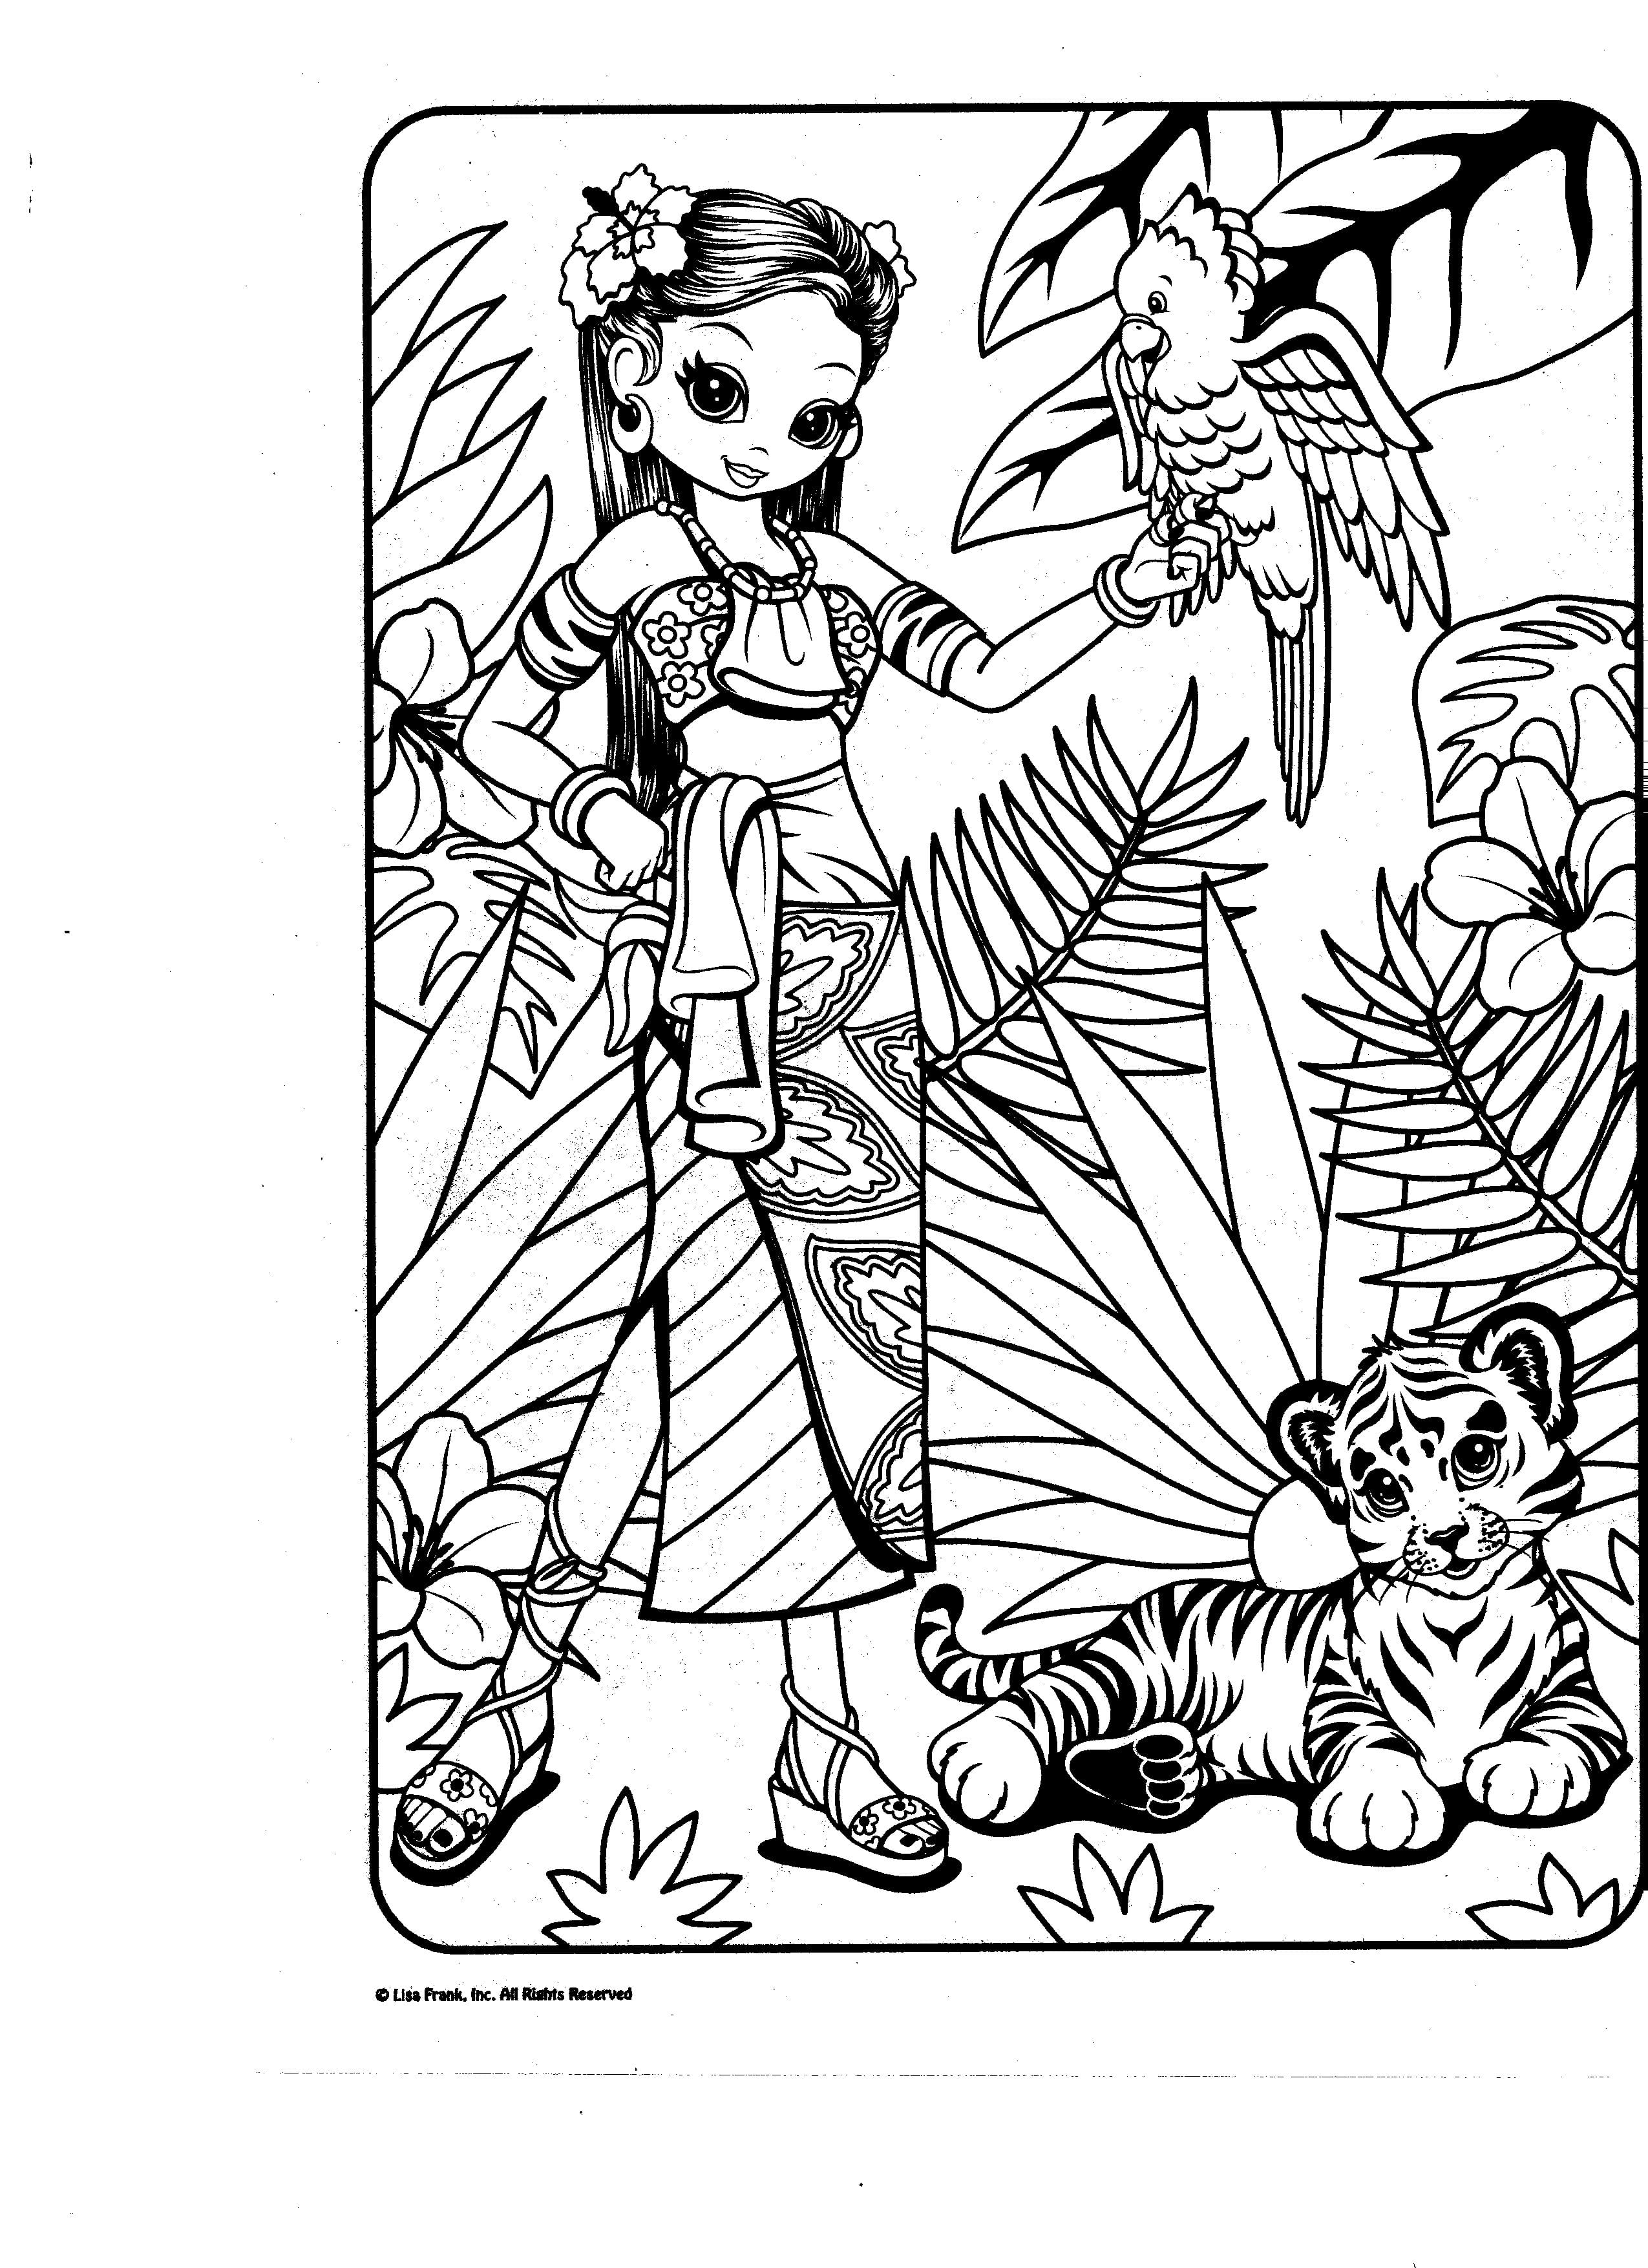 Lisa Frank Coloring Pages To Print